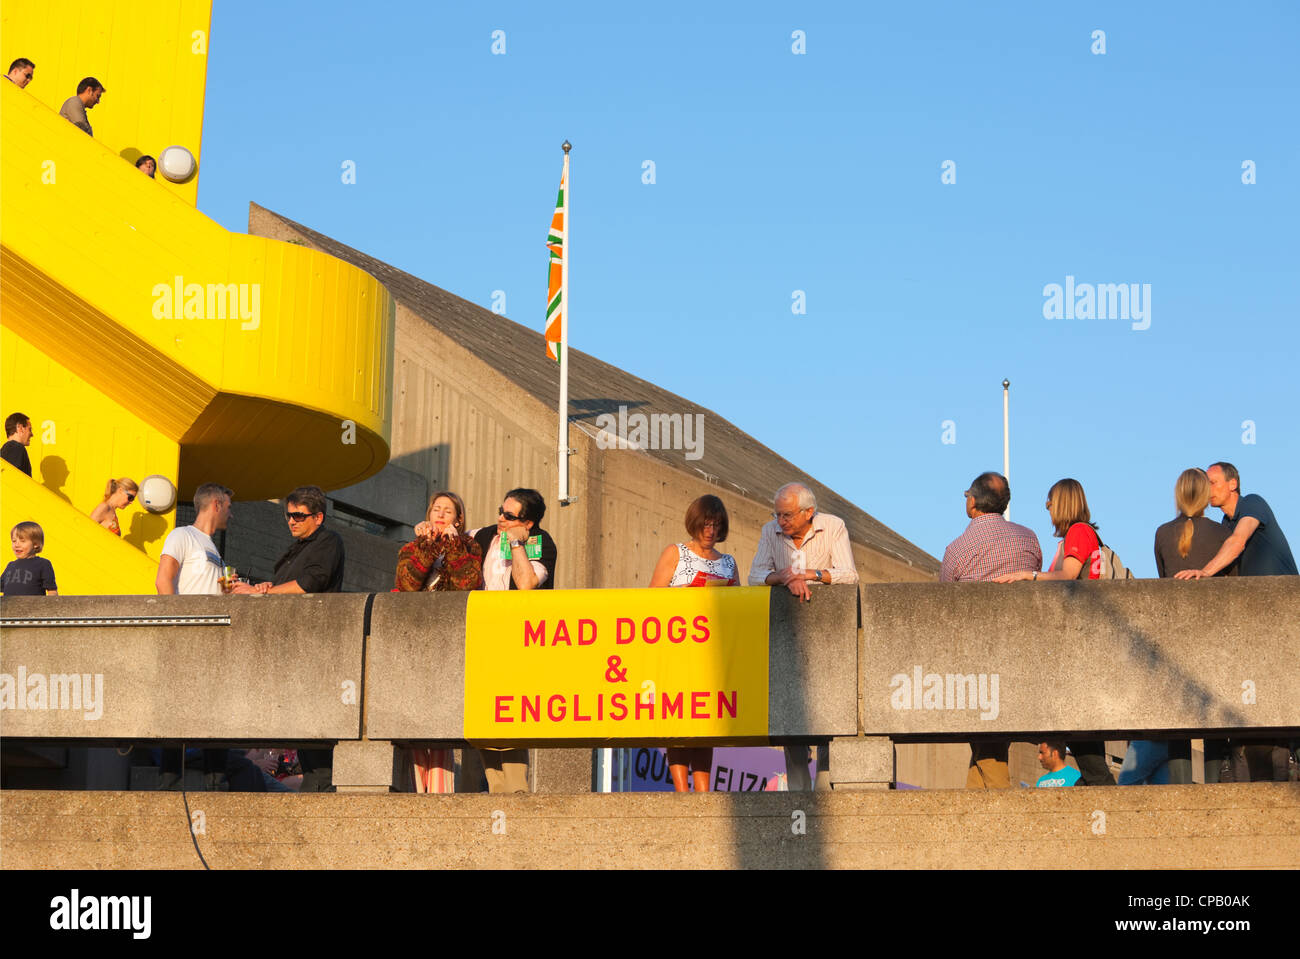 People leaning over balcony of BFI; London; England - Stock Image